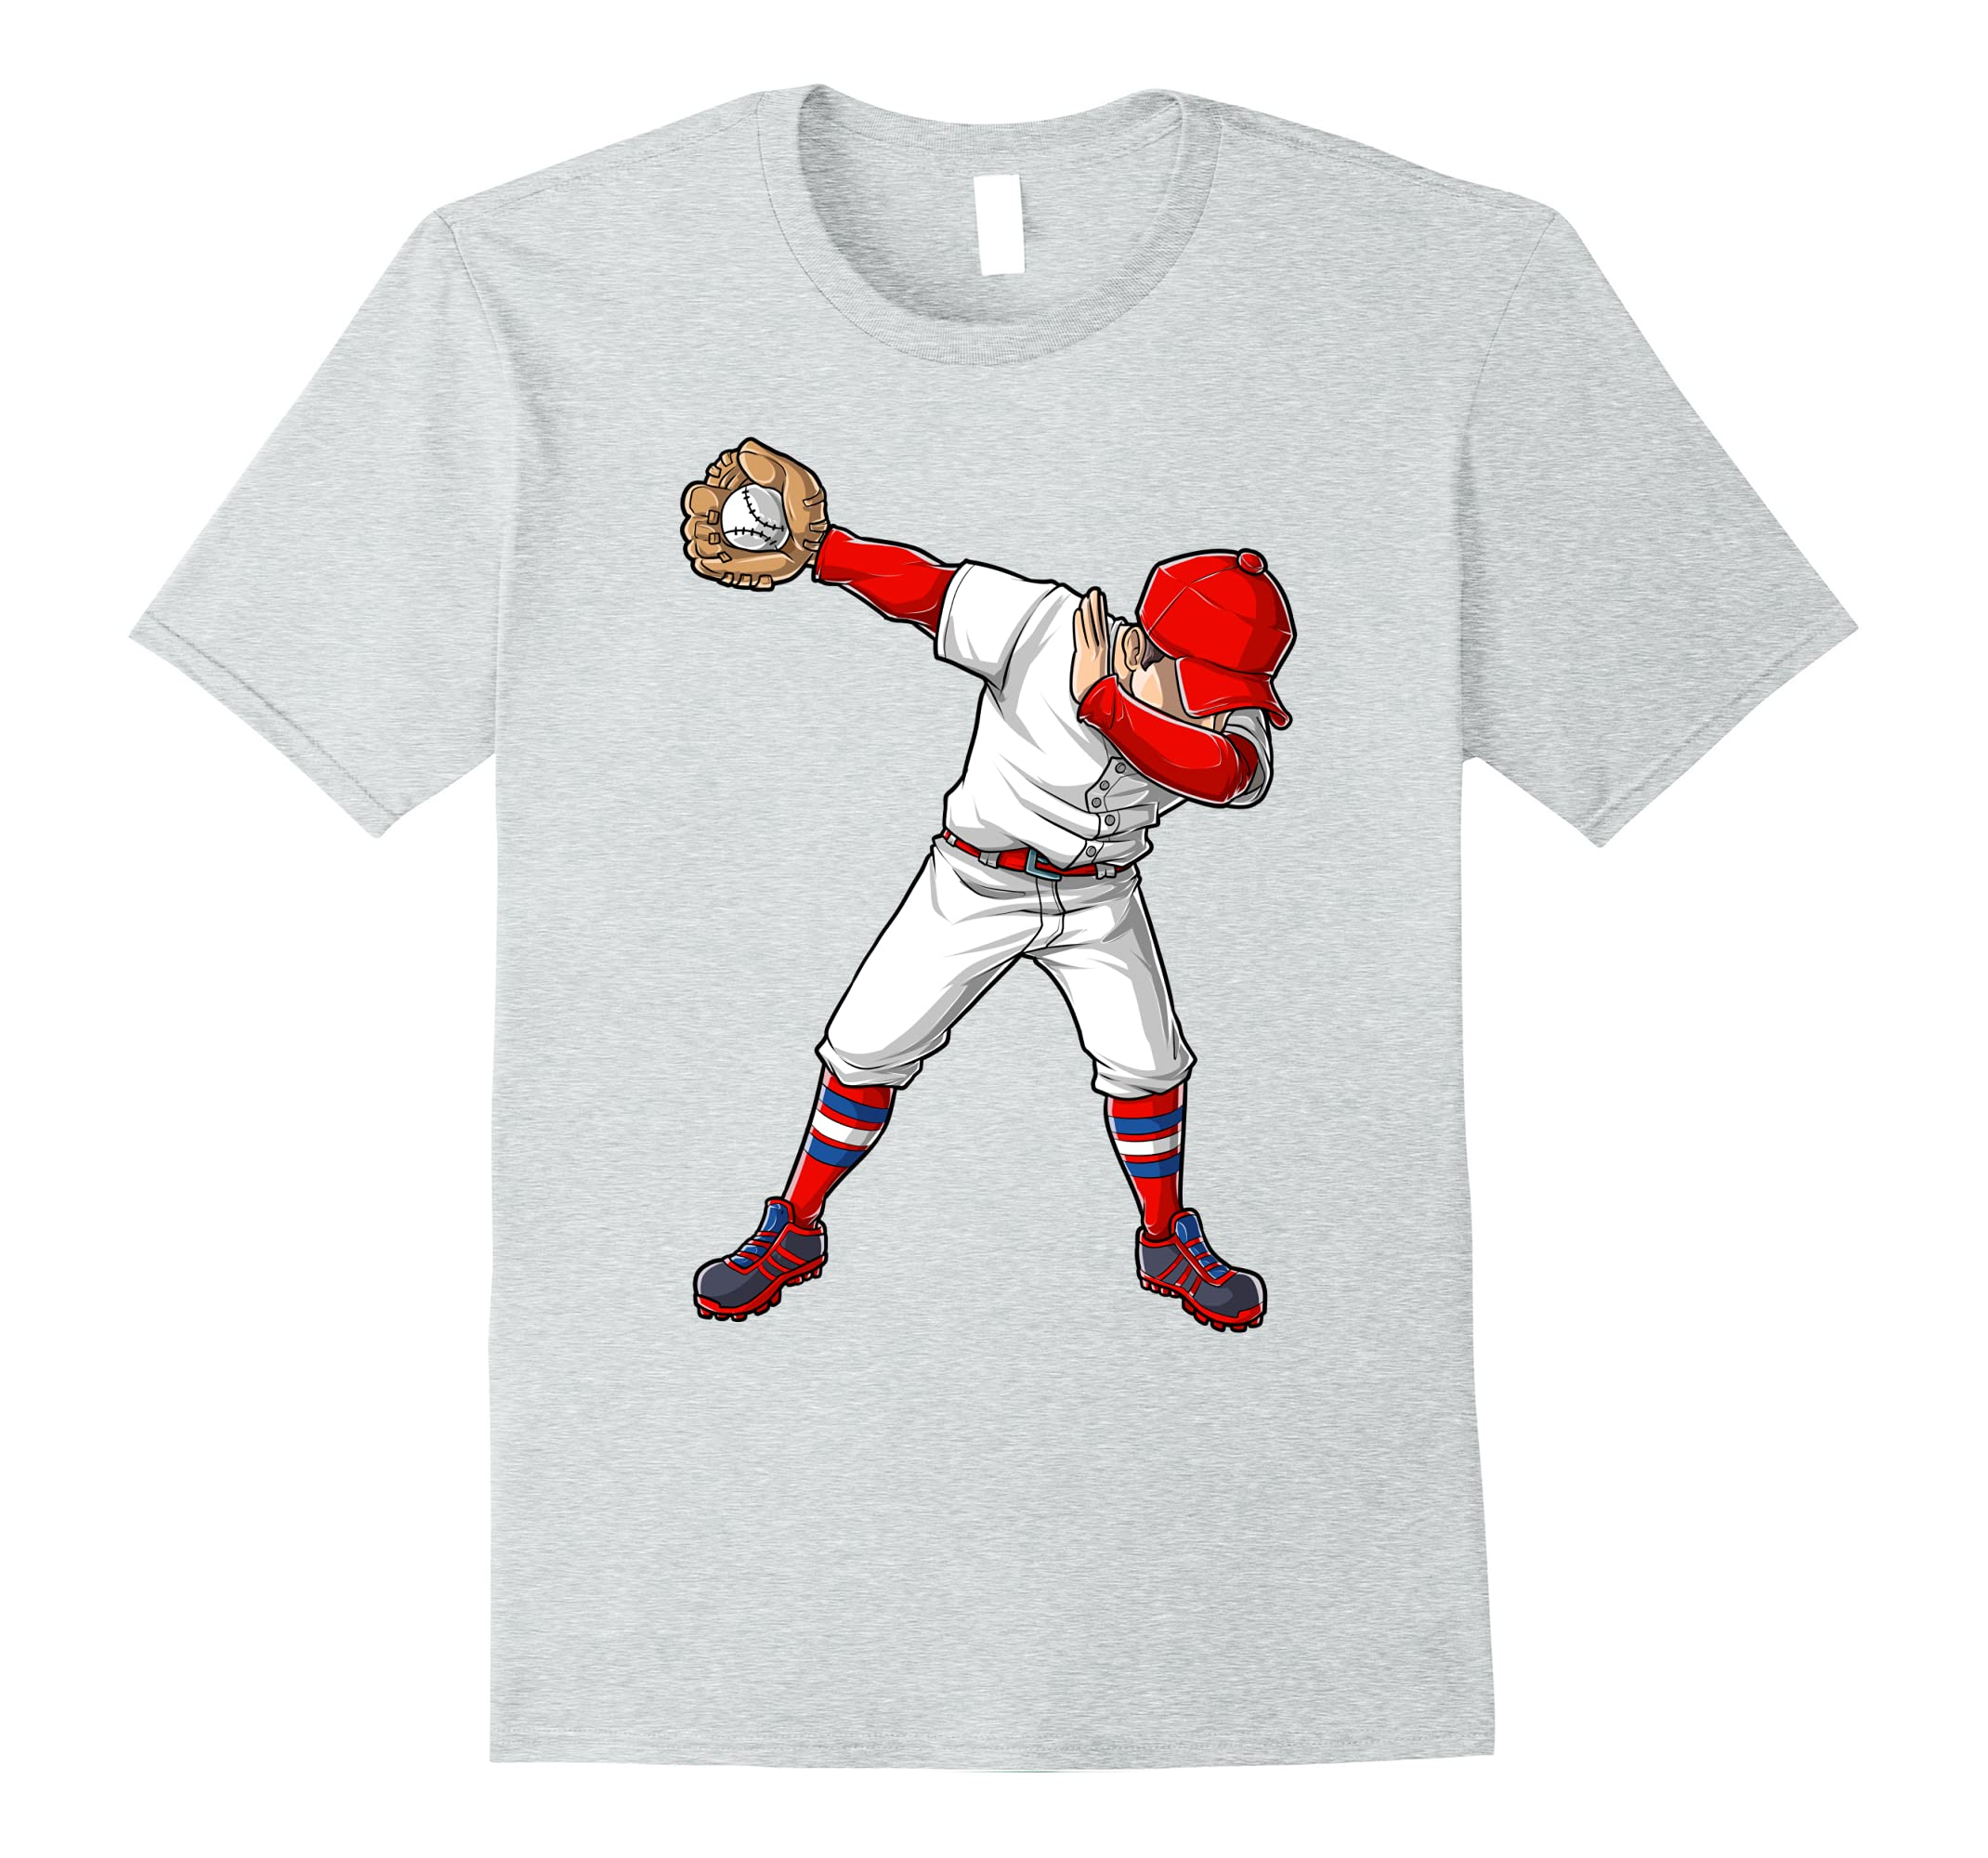 2a91263c Baseball Dabbing T Shirt Funny Dab Dance Shirts Boys Girls-ah my shirt one  gift